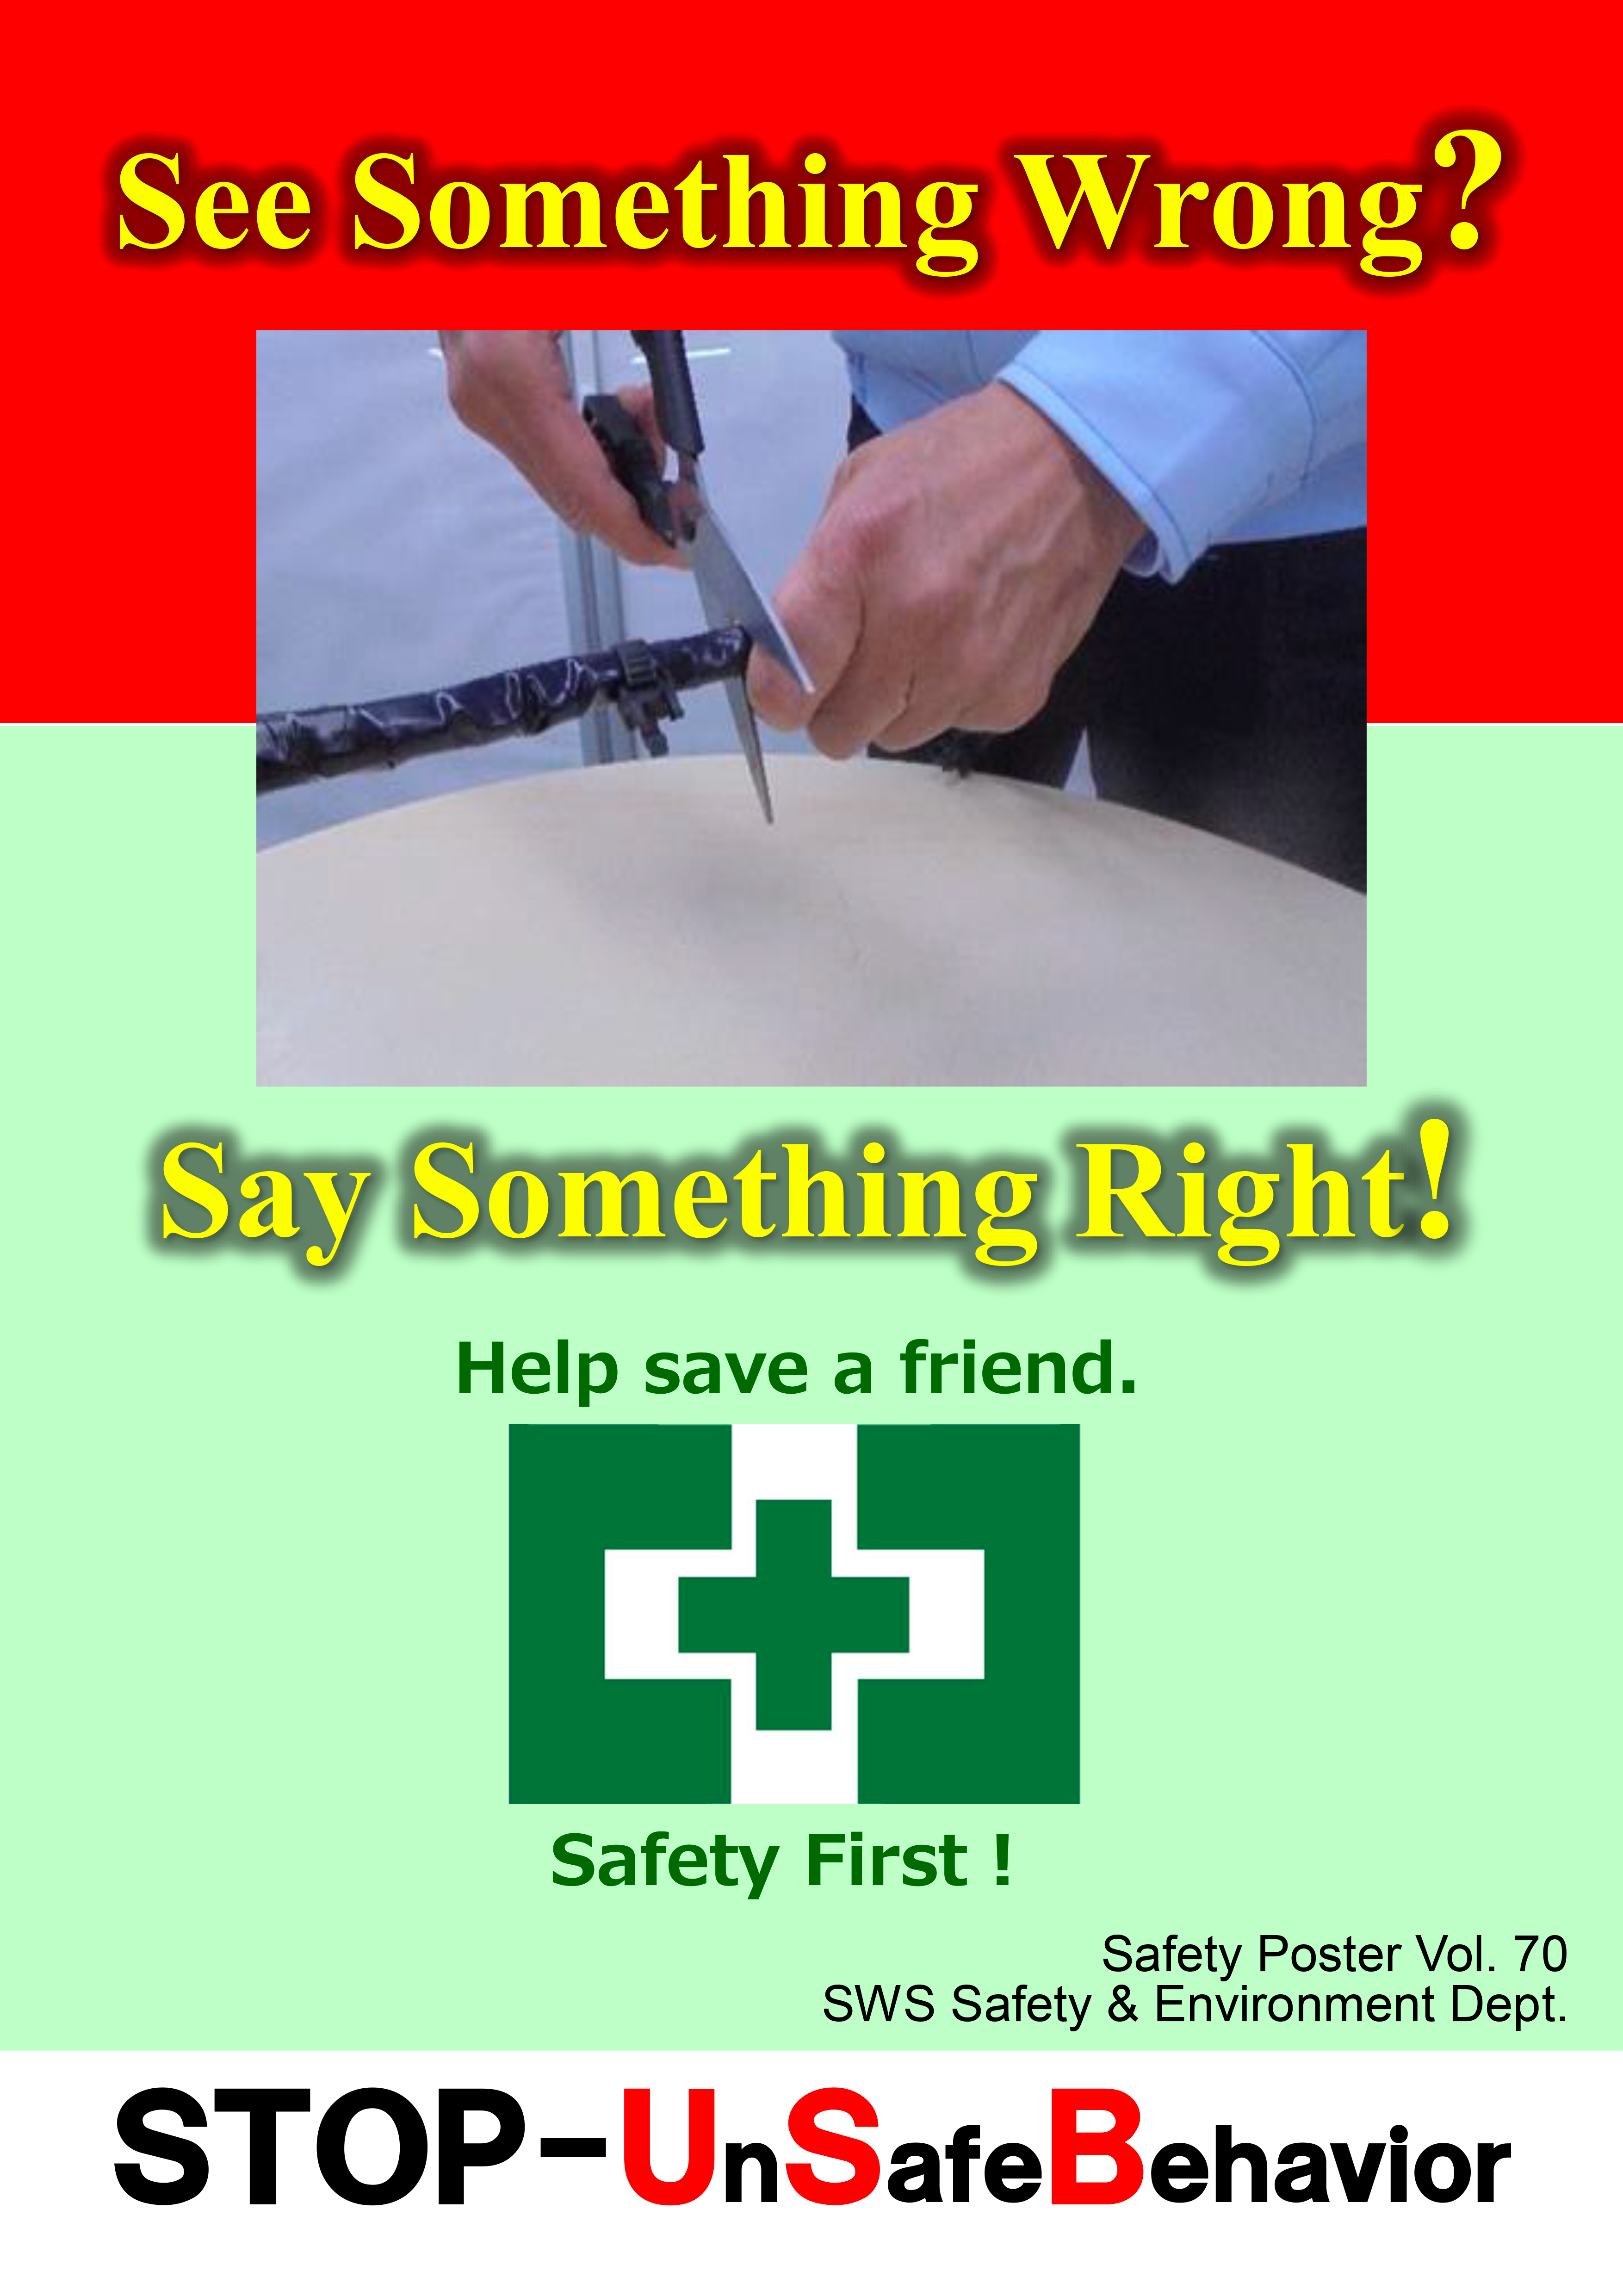 Sews Cabind Security Zero fall accidents